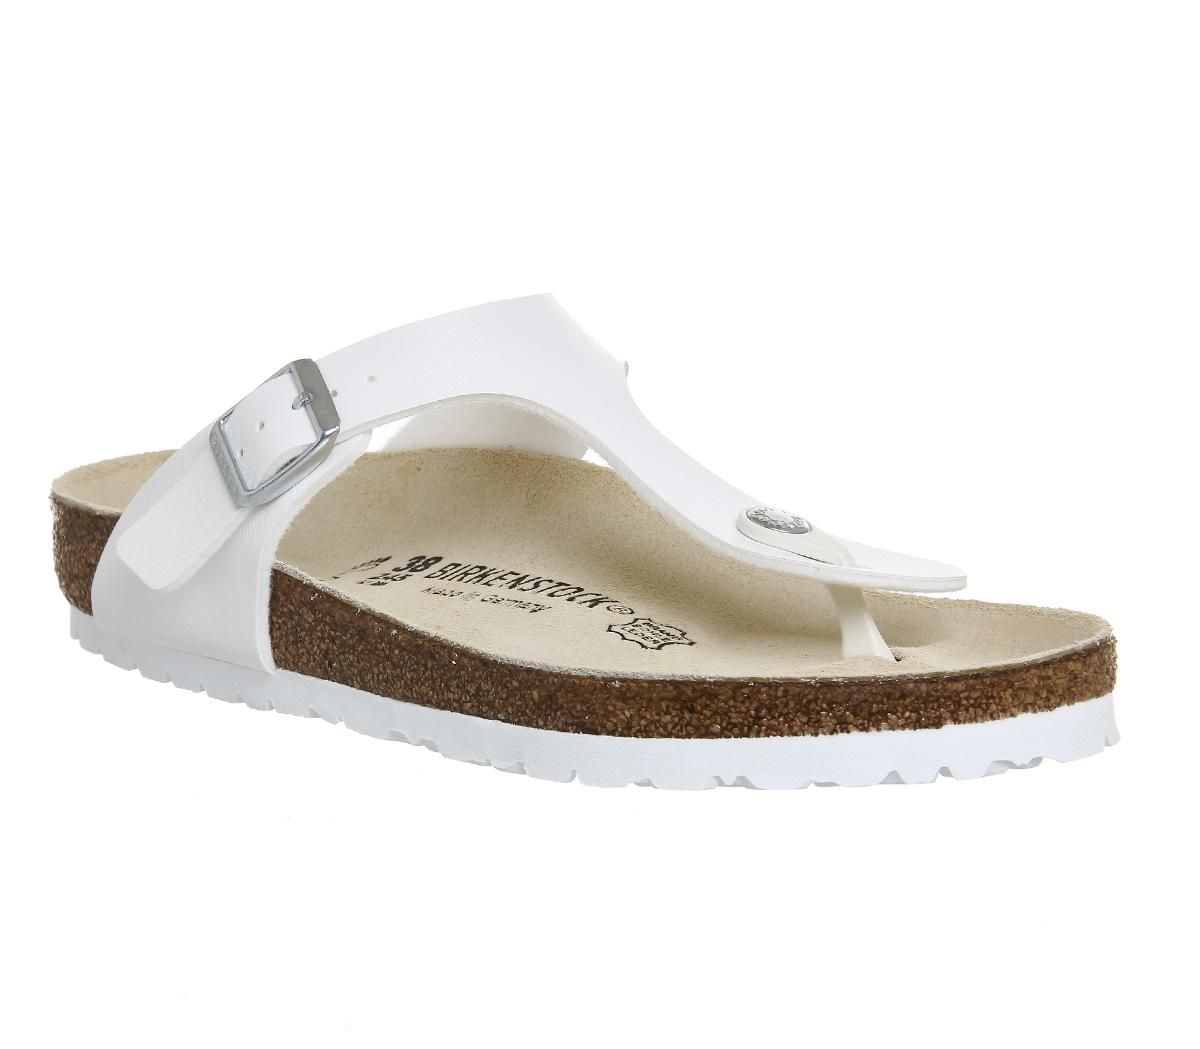 3448b2530 Birkenstock Gizeh Toe Thong Footbed White Synthetic - Sandals